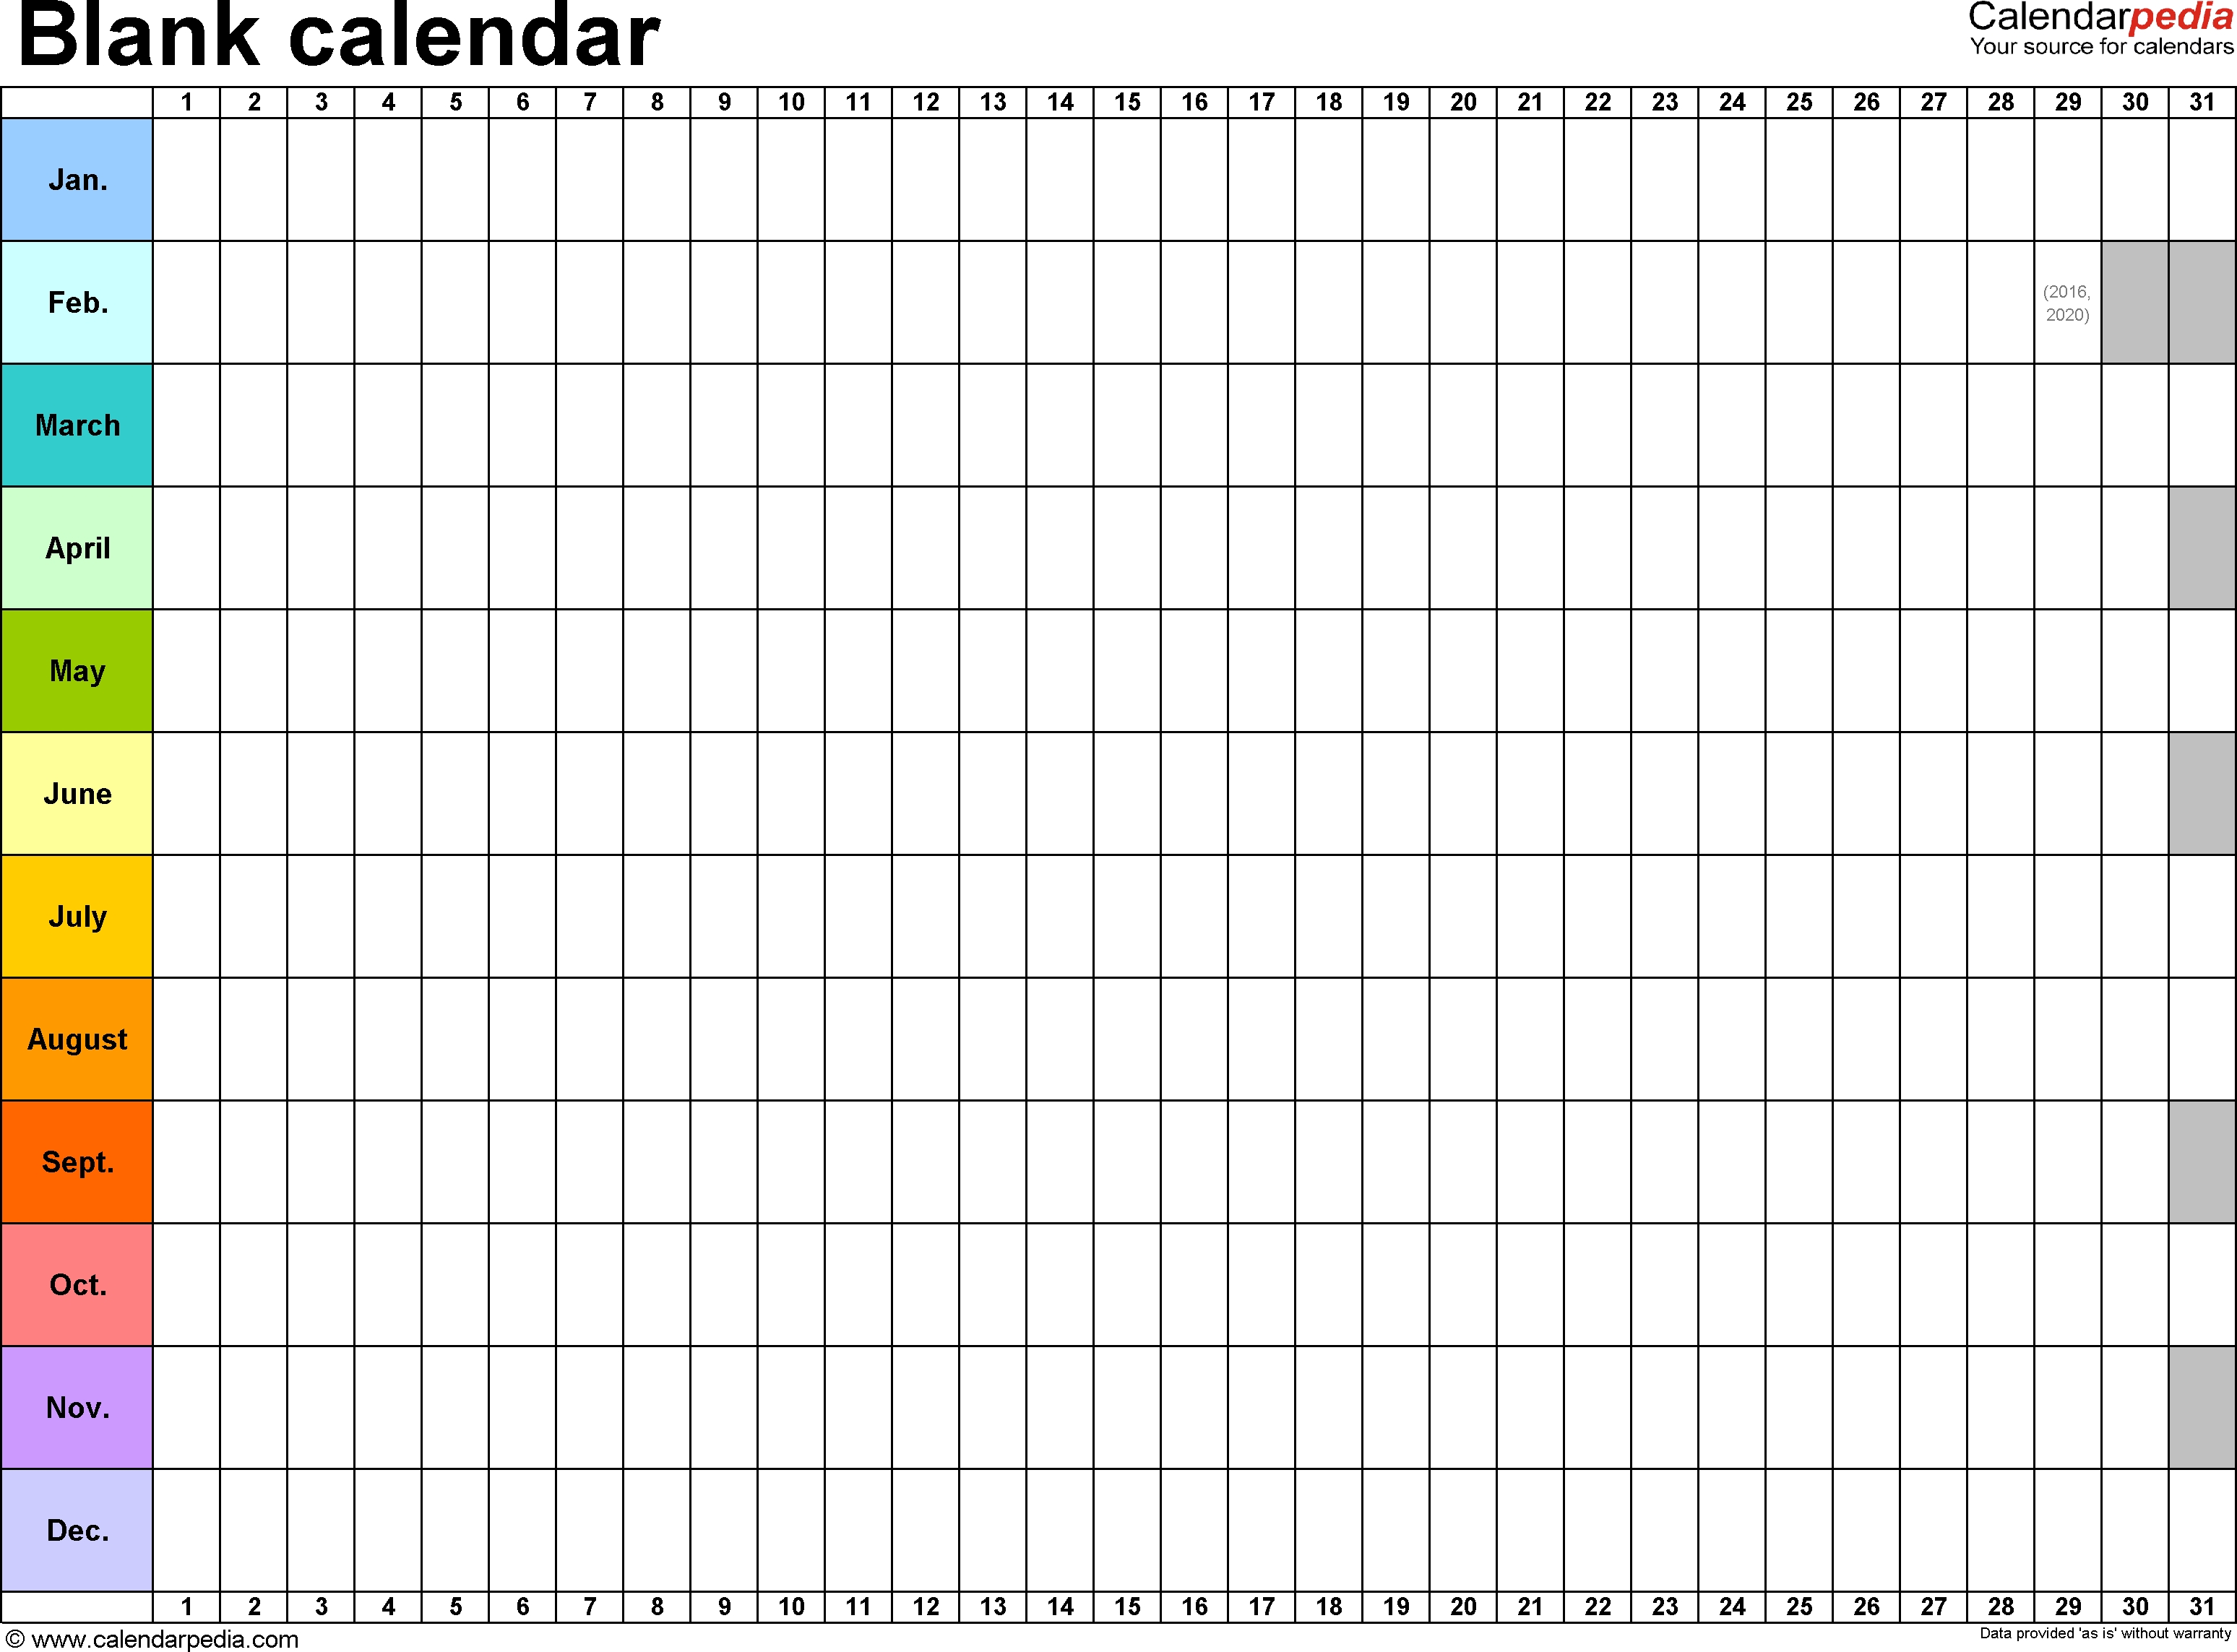 Blank Calendar - 9 Free Printable Microsoft Word Templates  Free 3 Month Calendars To Print